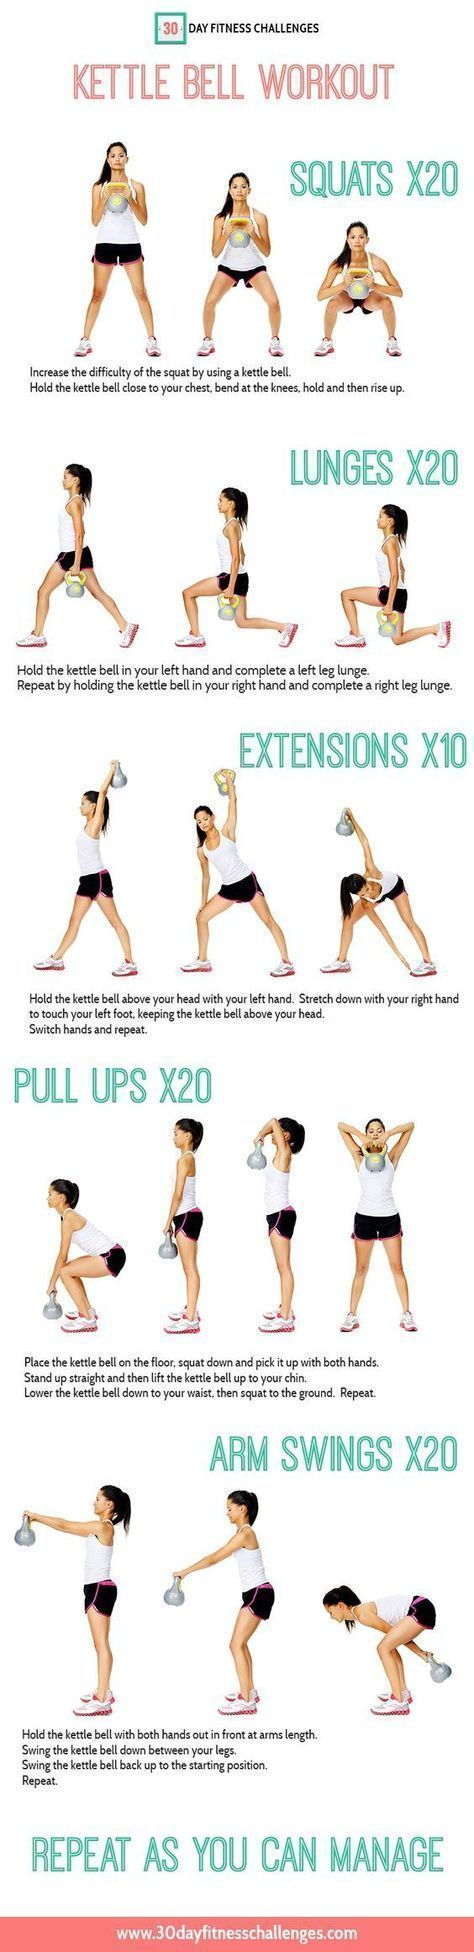 The Kettle Bell is one of the best pieces of fitness equipment for your house that you can invest in. It's one of the most versatile weights that can give you a full body workout, as well as an intense cardio session. It works by combining resistance training (building muscle) with cardiovascular conditioning (getting in … #muscletraining #strengthtraining #musclefitness